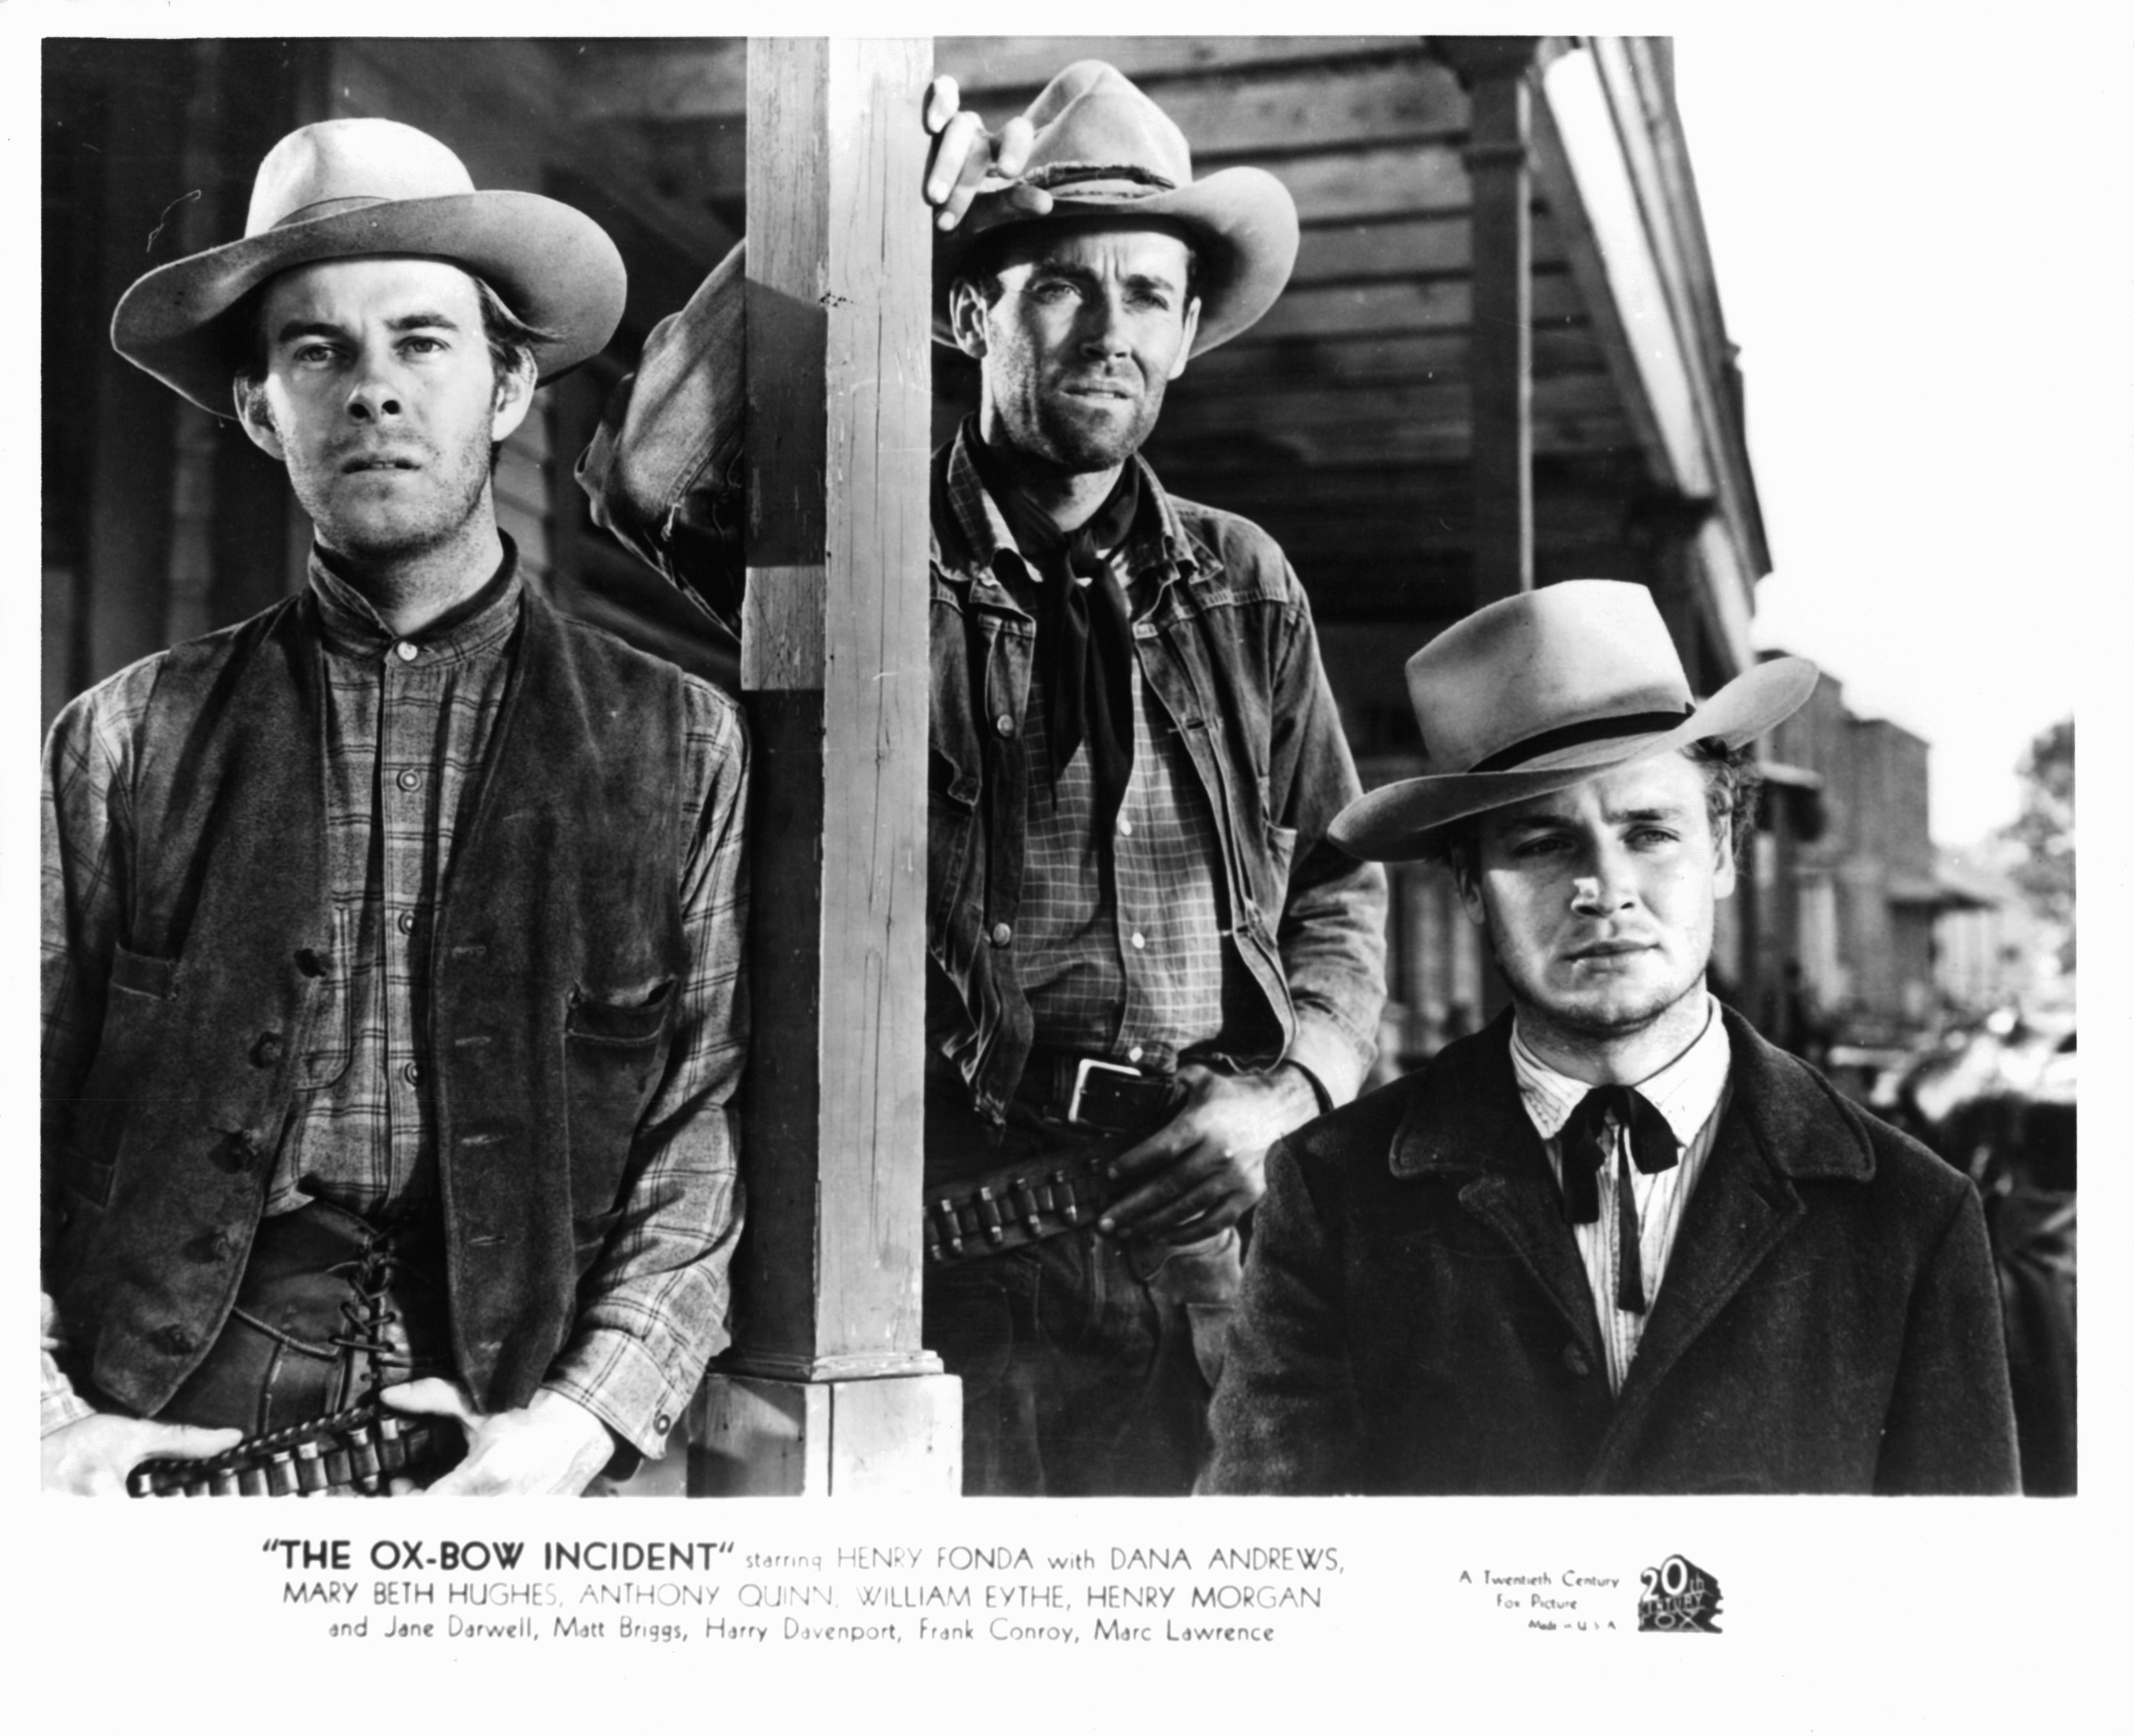 Harry Morgan And Henry Fonda In 'The Ox-Bow Incident'